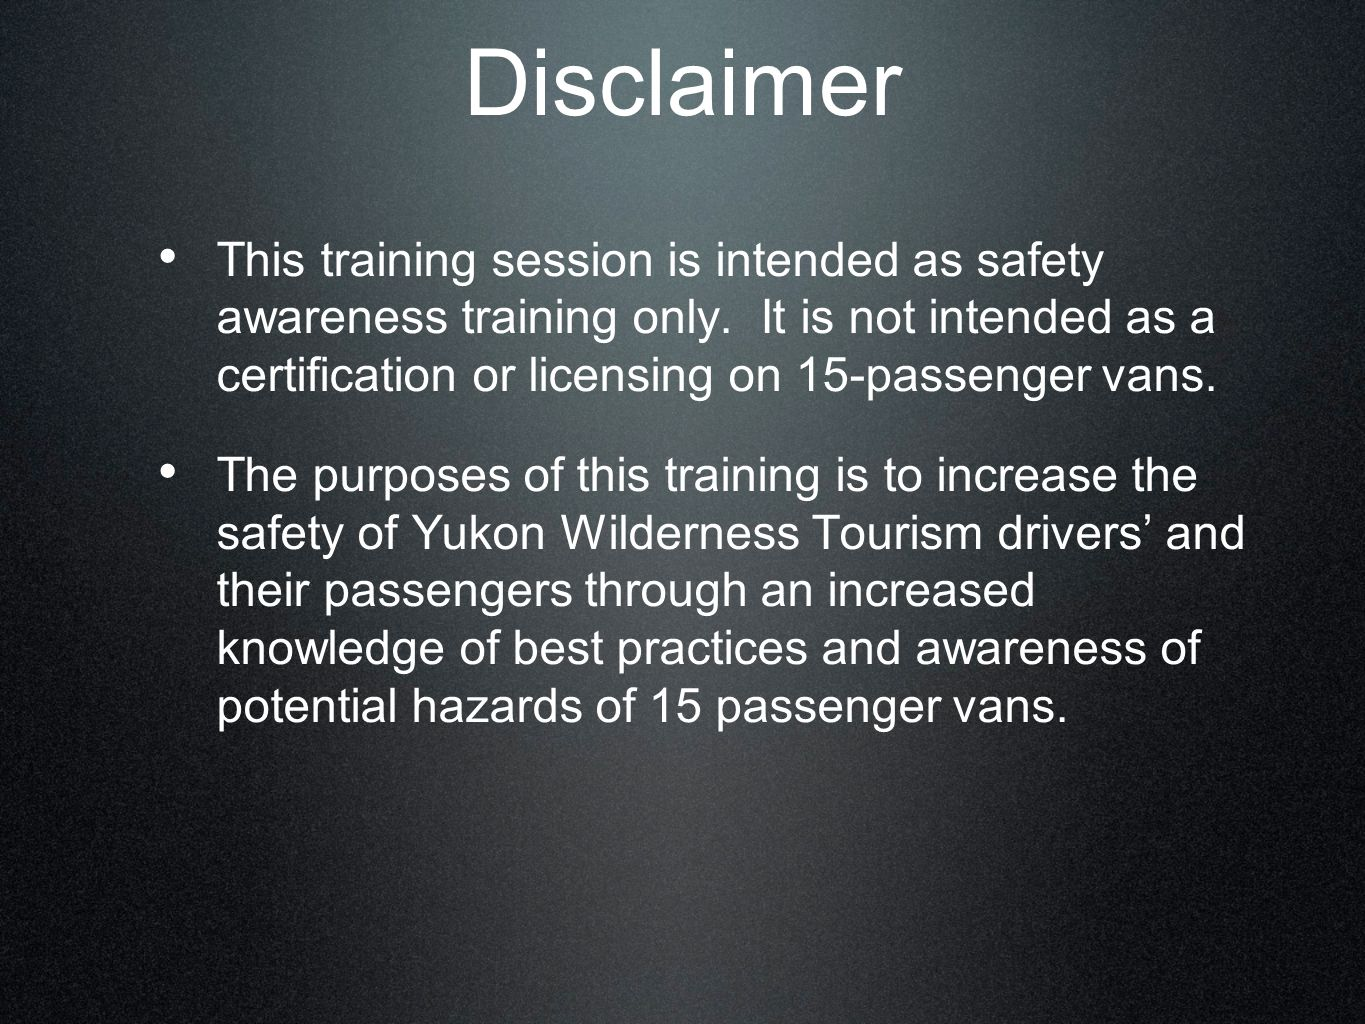 Disclaimer This training session is intended as safety awareness training only. It is not intended as a certification or licensing on 15-passenger van